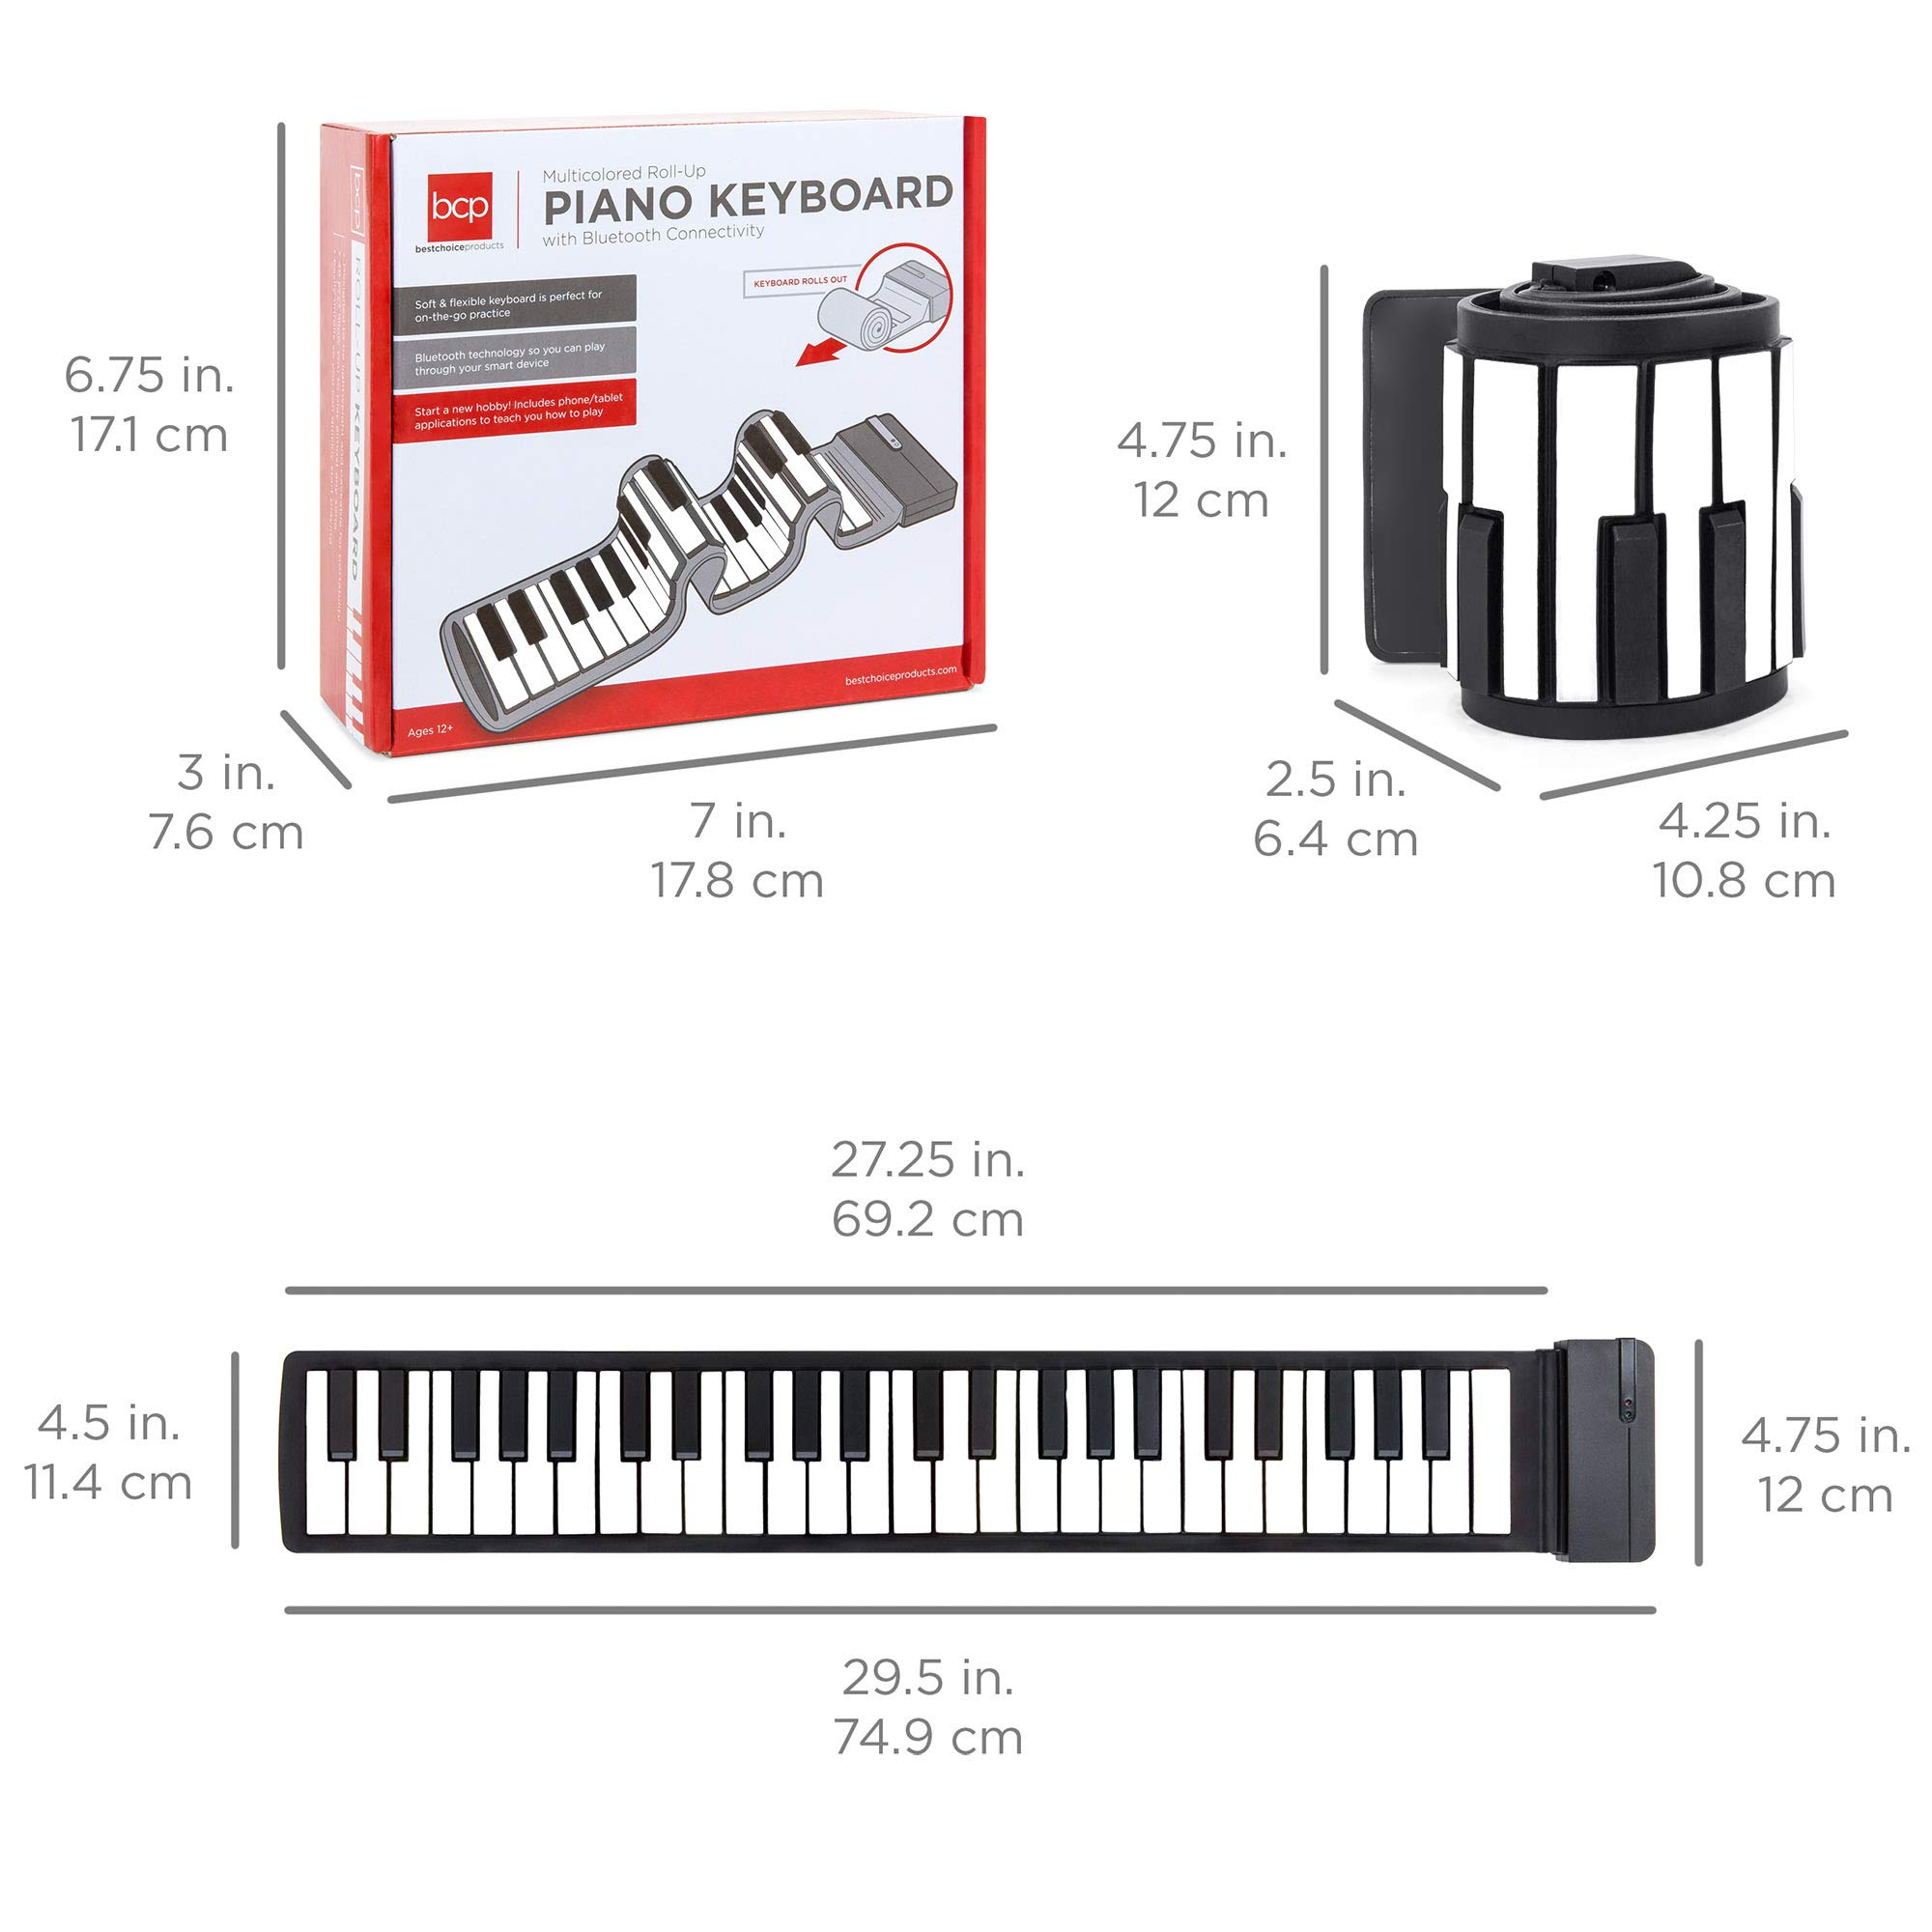 Best Choice Products Kids 49-Key Portable Flexible Roll-Up Piano Keyboard Musical Educational Toy Instrument w/Learn-To-Play App Game, Bluetooth Phone Pairing, Note Labels, USB Charging - White by Best Choice Products (Image #6)